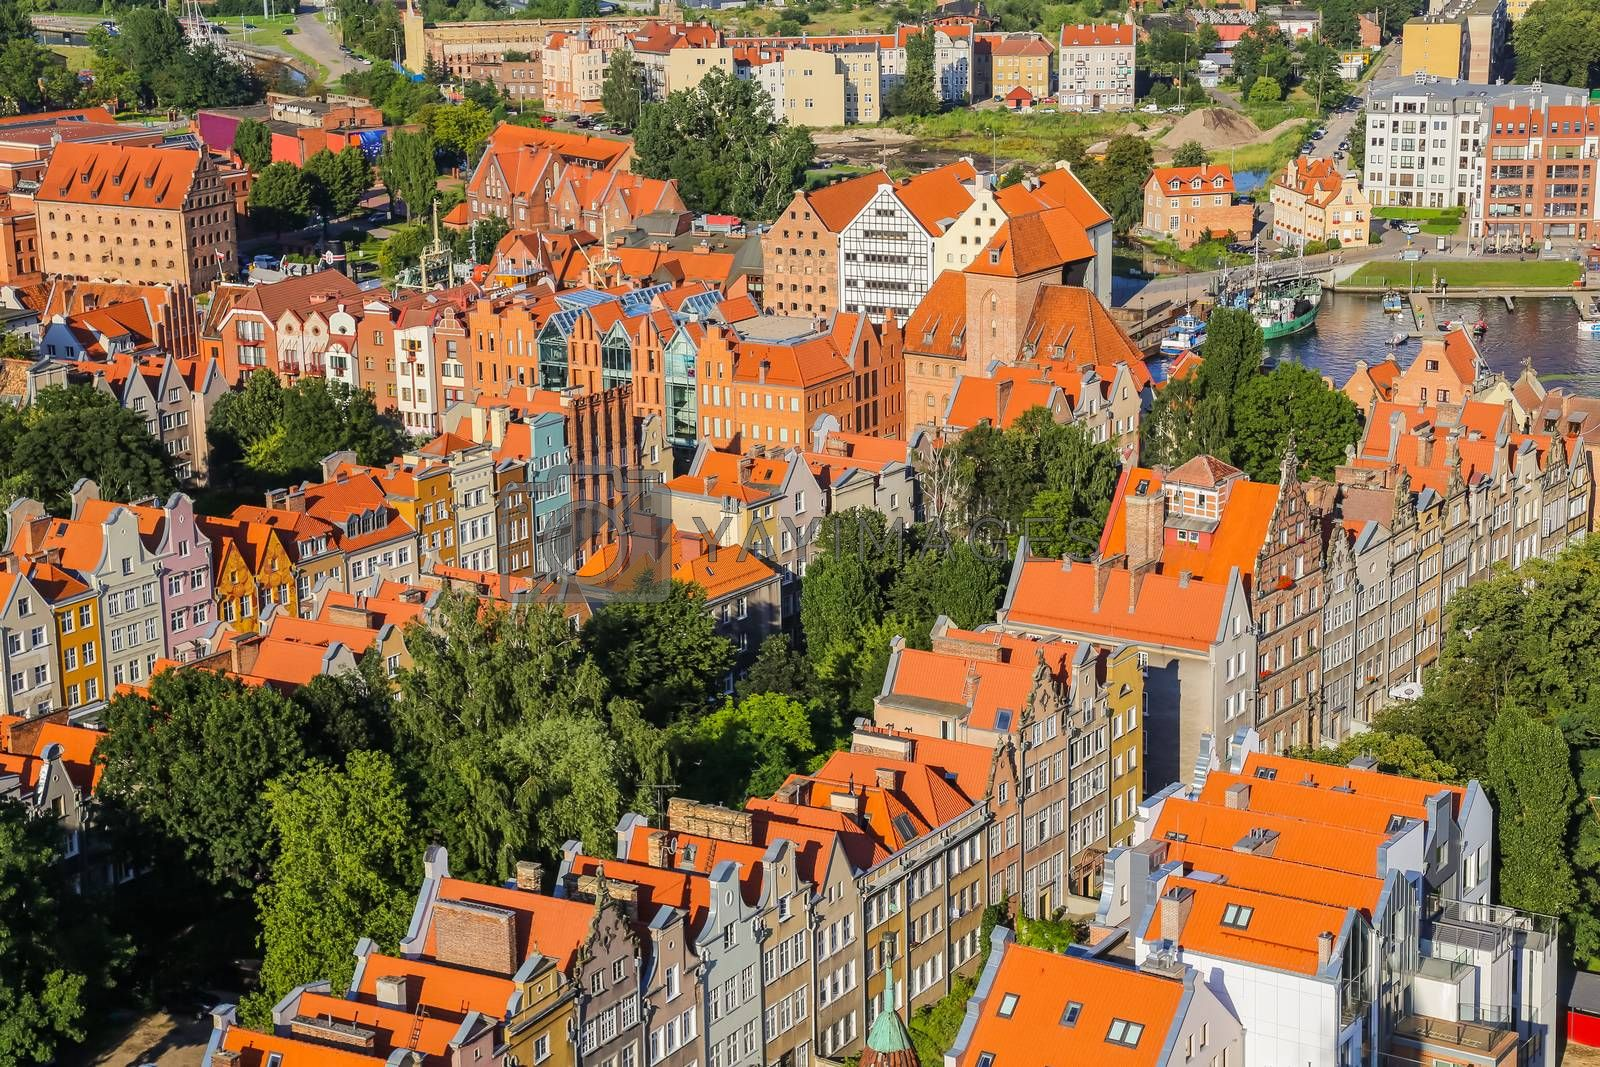 Aerial view of old historical town centre with typical colorful houses buildings, tiled roofs, Gdansk, Poland